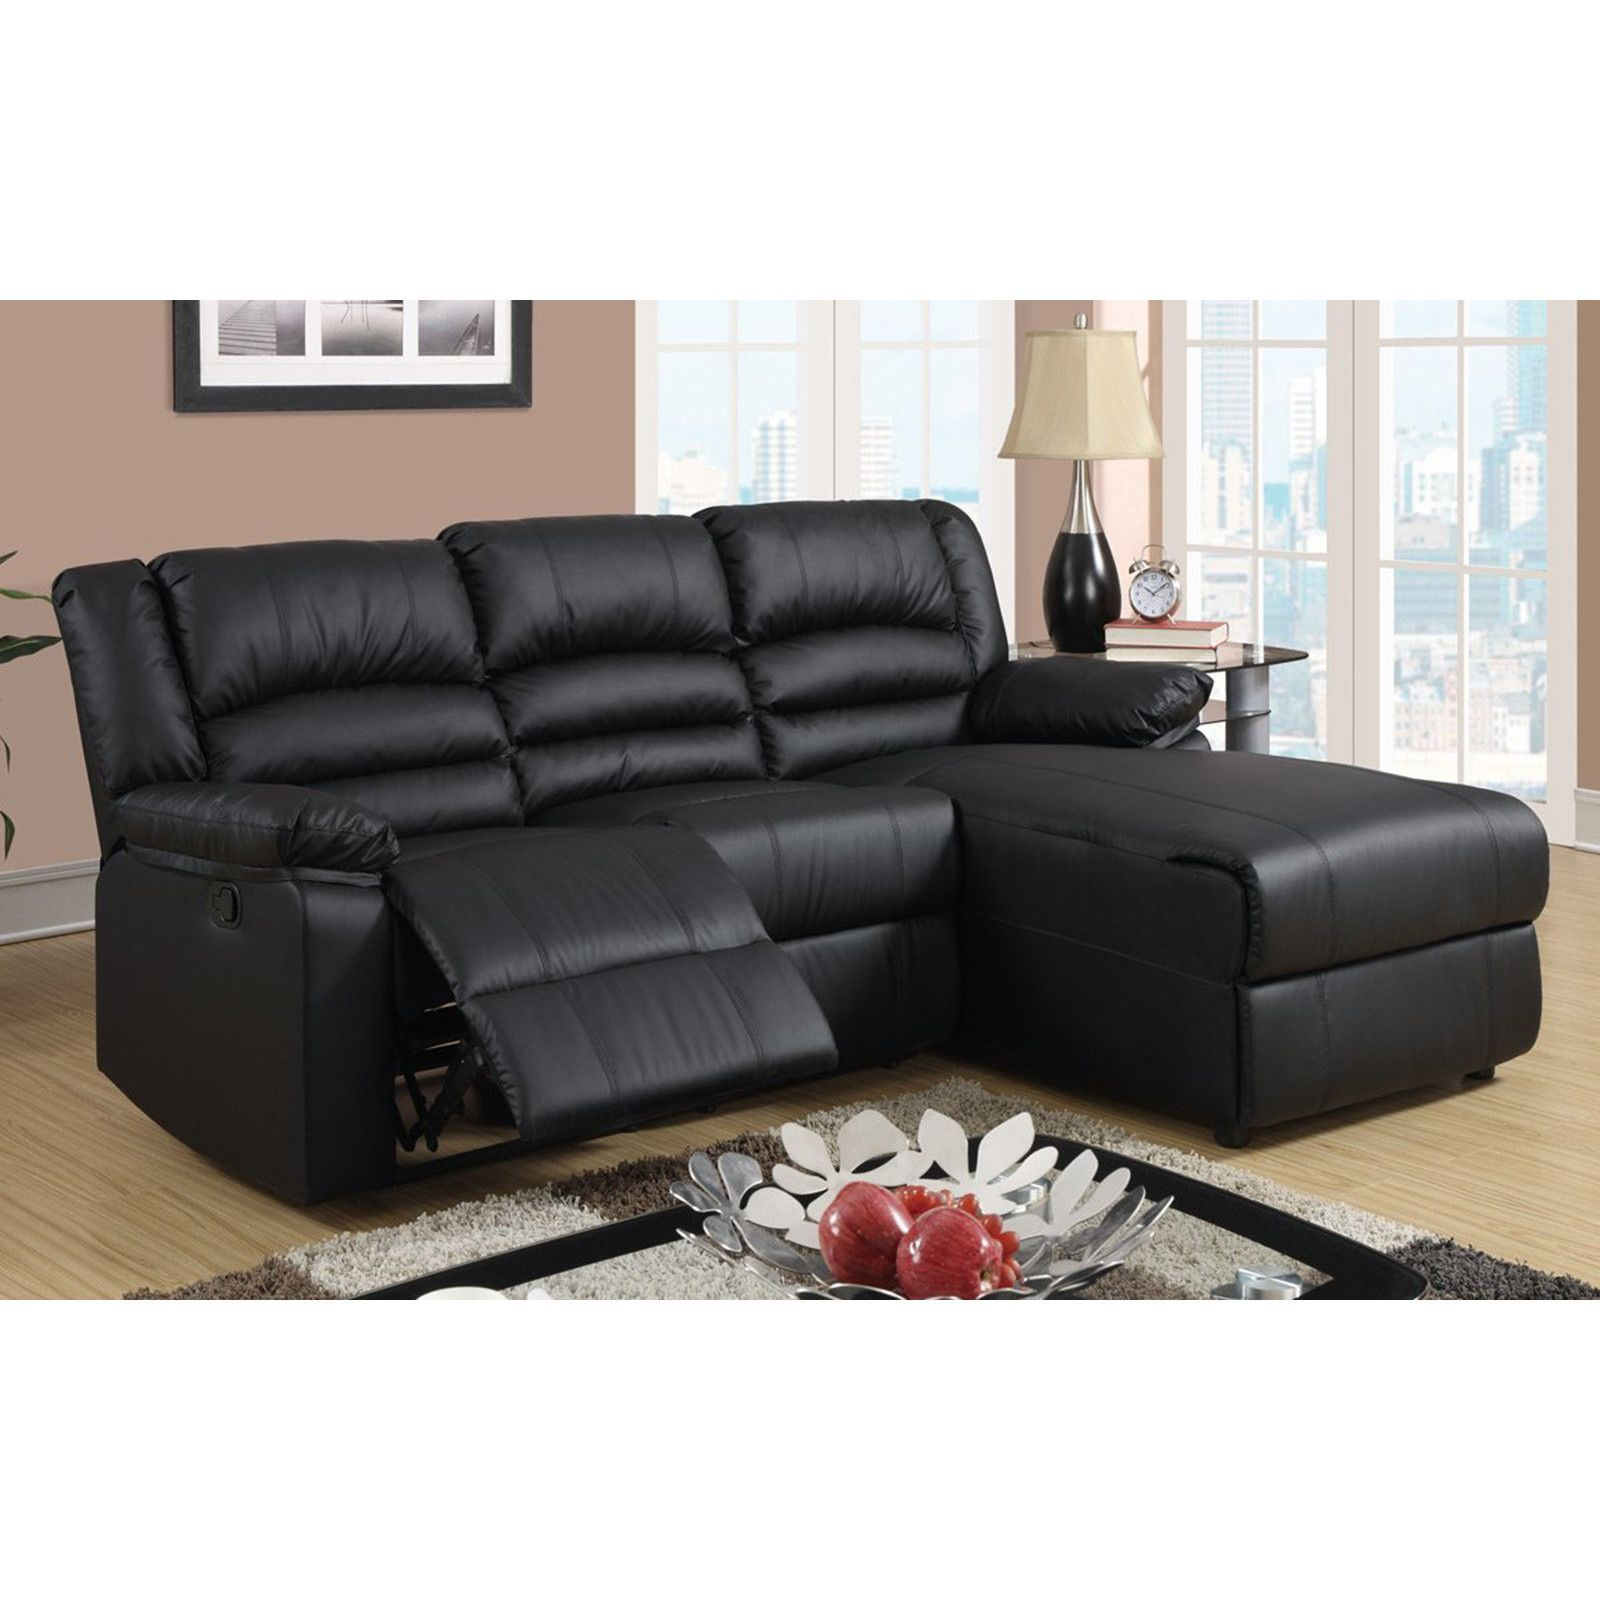 Modern Bonded Leather Small Space Sectional Reclining Sofa With Chaise Black Tiny Home Sectional Sofa With Recliner Leather Sectional Sofas Small Sectional Sofa